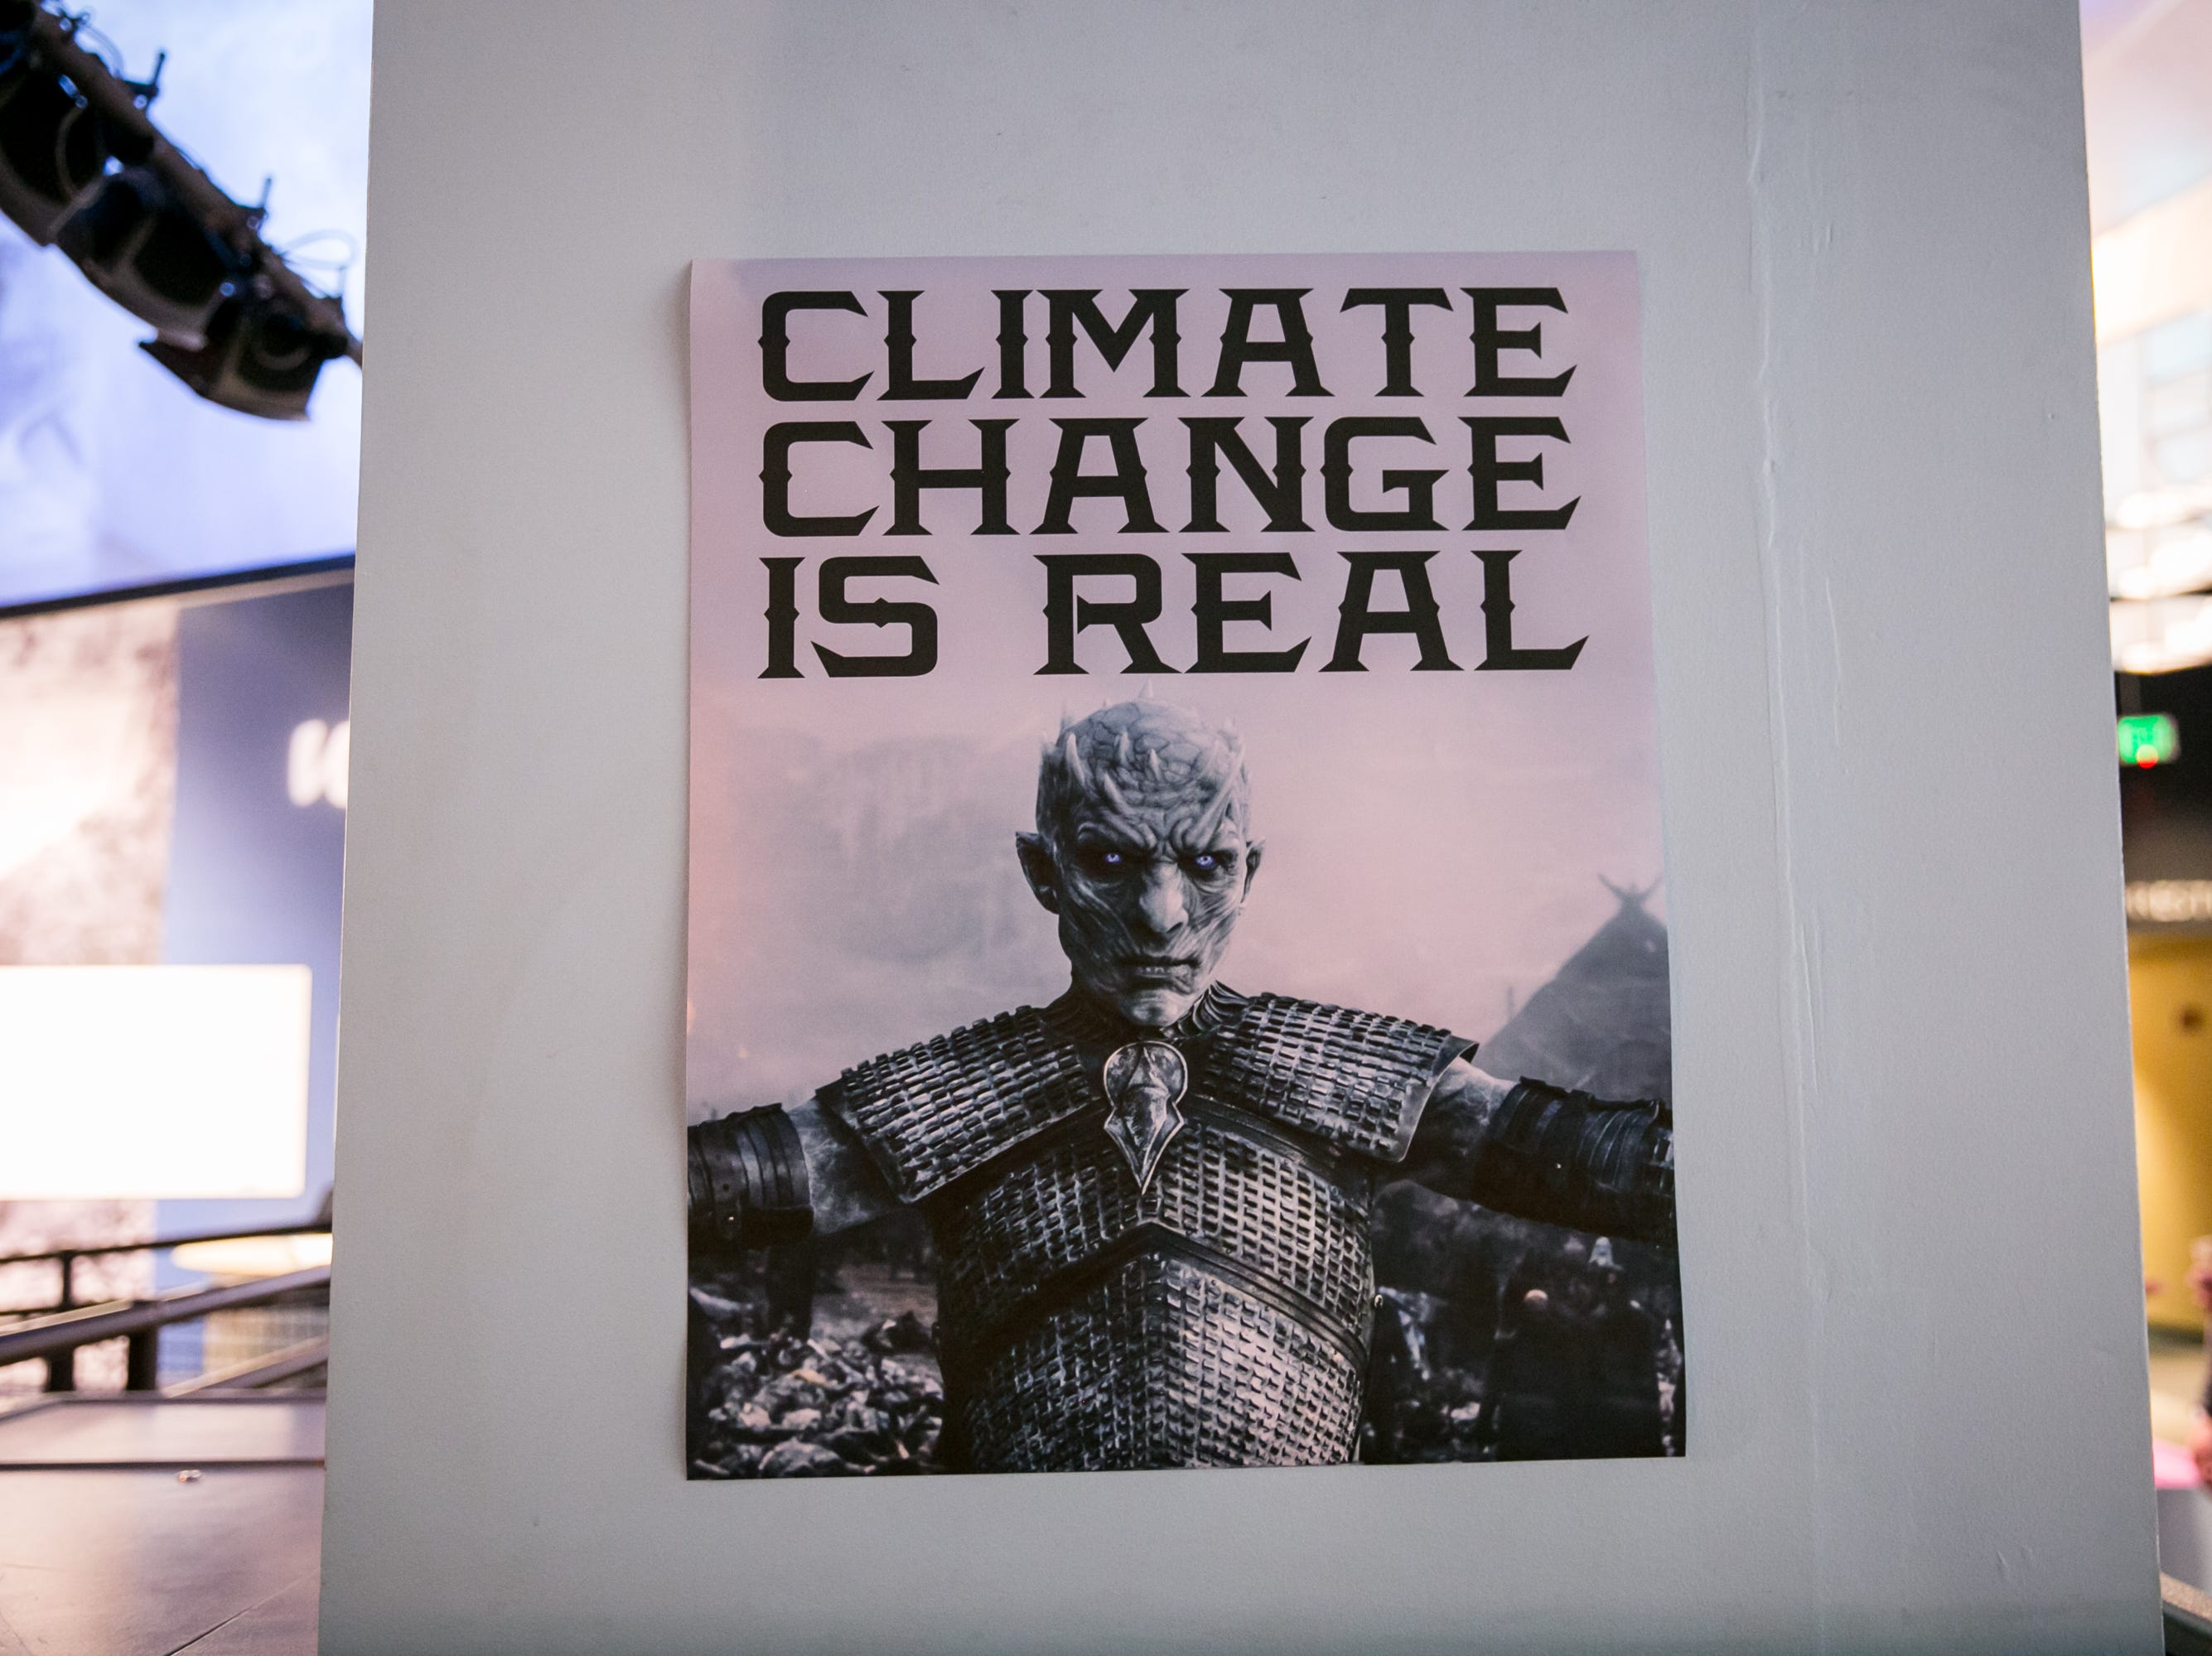 It's OK to believe in climate change and be a Republican